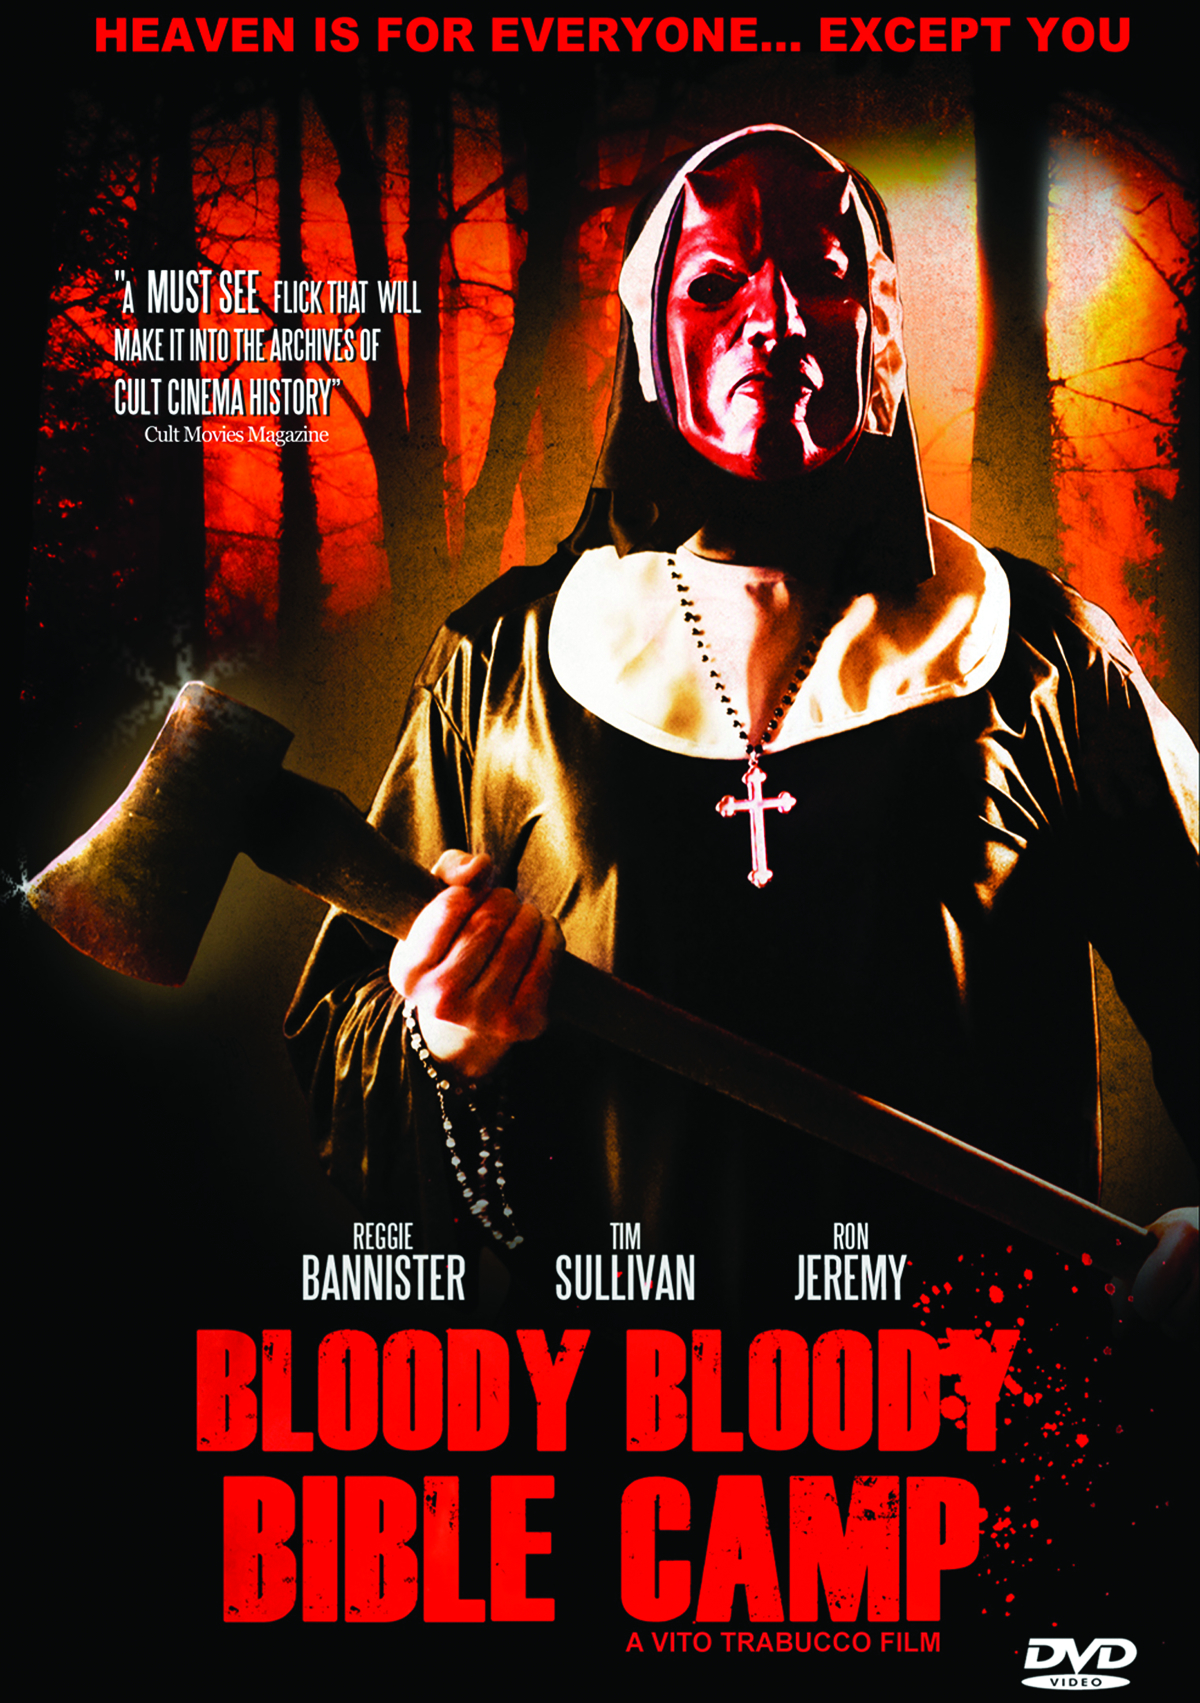 BLOODY BLOODY BIBLE CAMP DVD